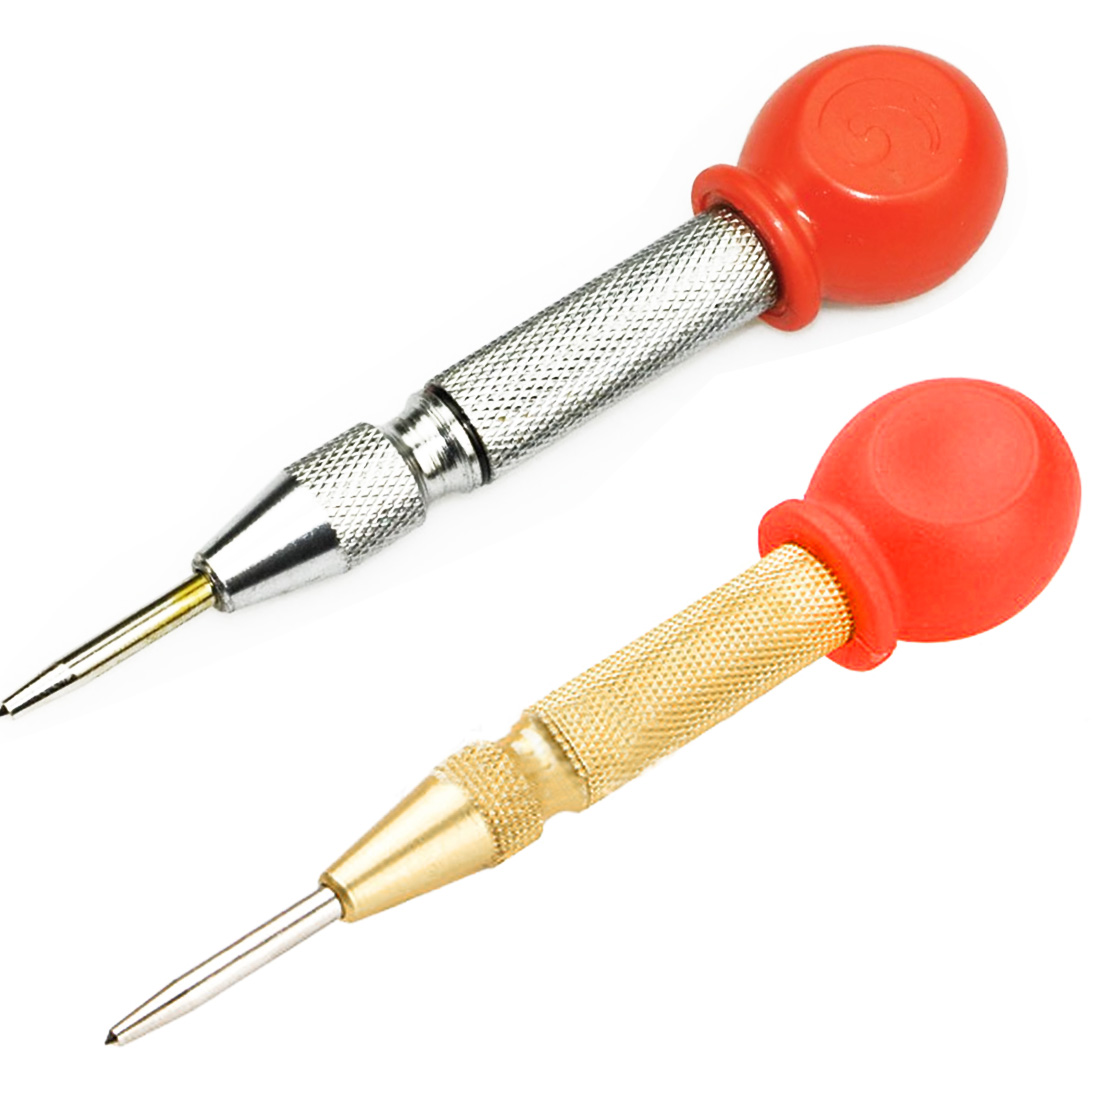 1pcs Automatic HSS Center Punch Spring Loaded Chrome Rivet Screw Auto Mark Hole Length 130mm Yellow And Silver